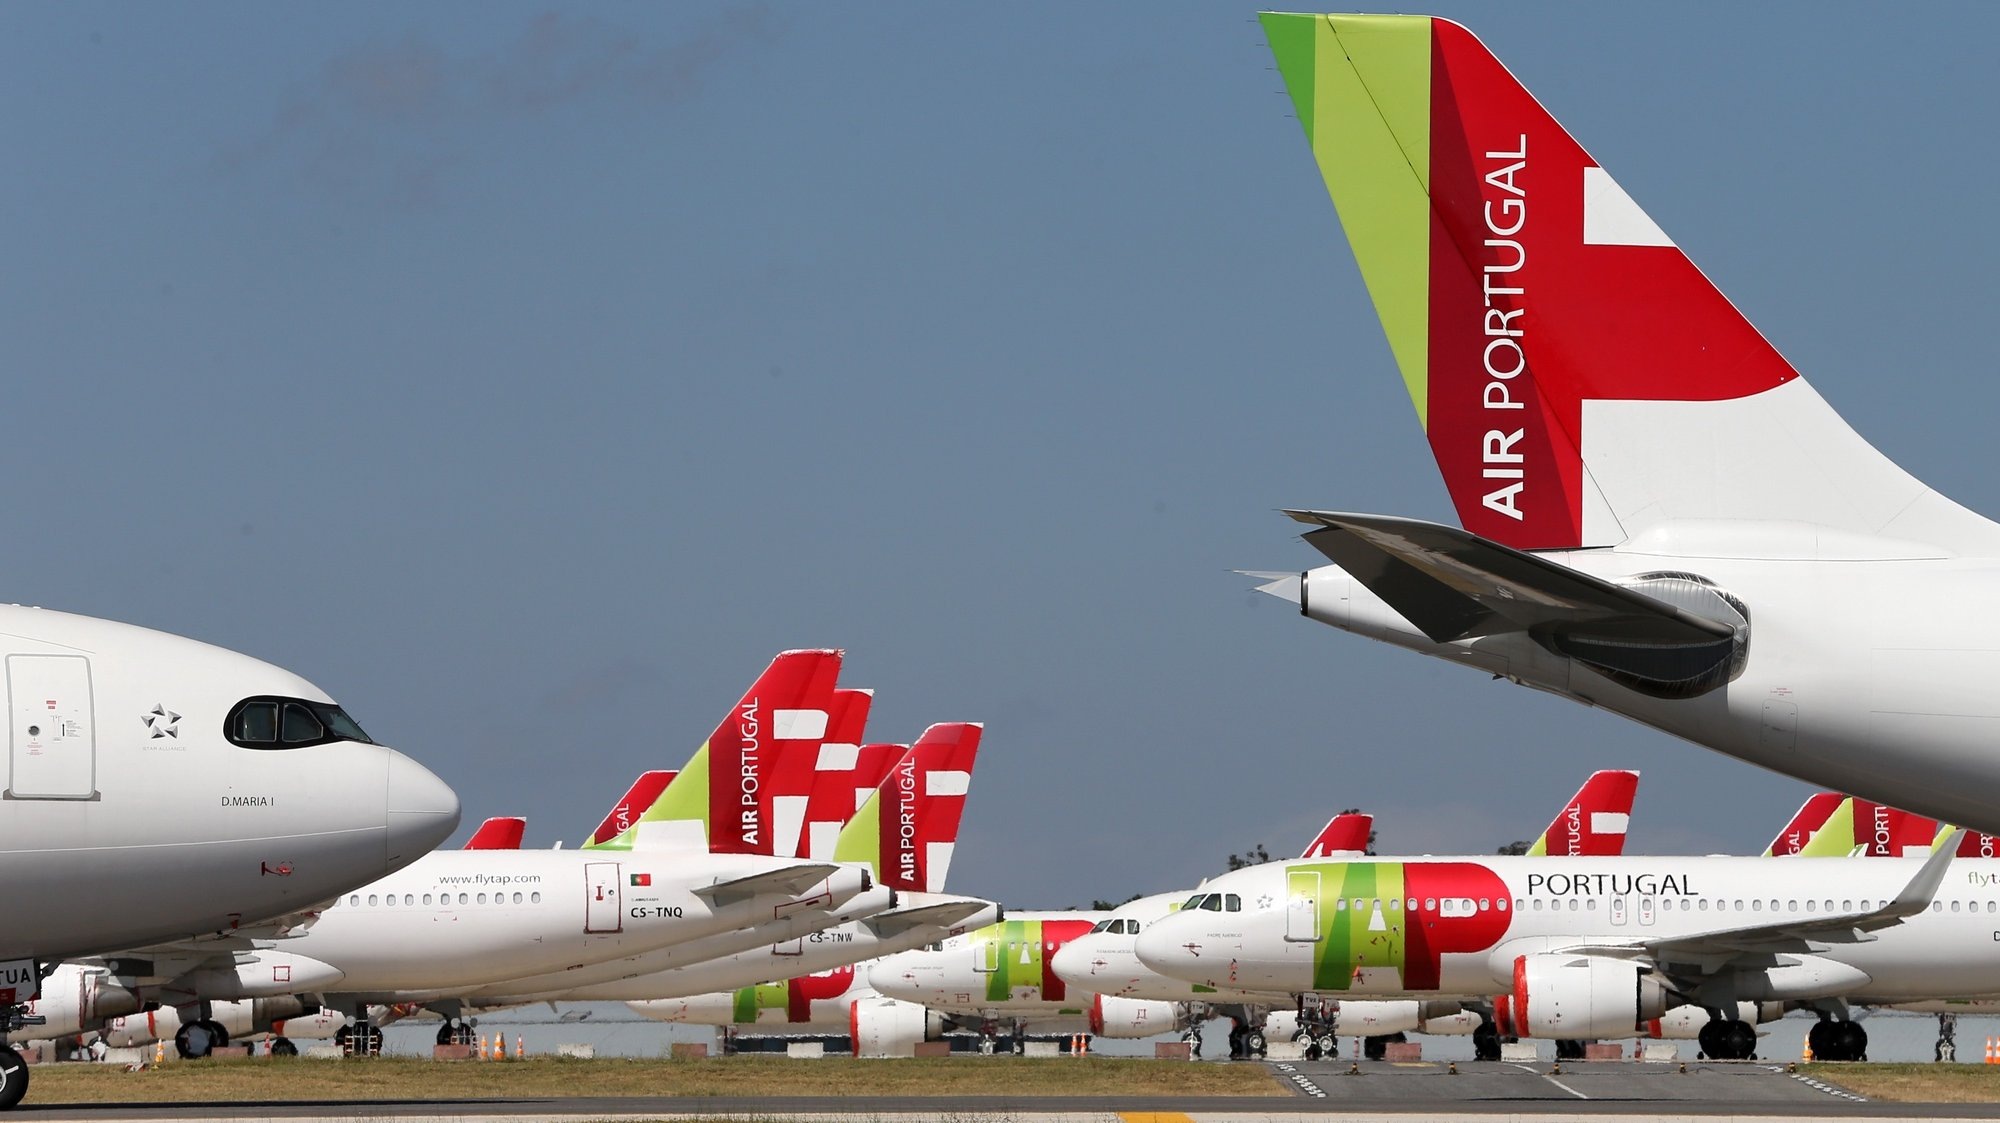 epa08524023 A TAP Air Portugal aircraft grounded at Humberto Delgado airport closed for passenger traffic as part of the exceptional traffic measures to combat the epidemiological situation of Covid-19, in Lisbon, Portugal, 09 April 2020 (reissued 02 July 2020). The granting of state support to TAP has been under discussion since the airline's activity came to a standstill because of the coronavirus pandemic, with an agreed injection of up to 1,200 million euros.  EPA/MANUEL DE ALMEIDA